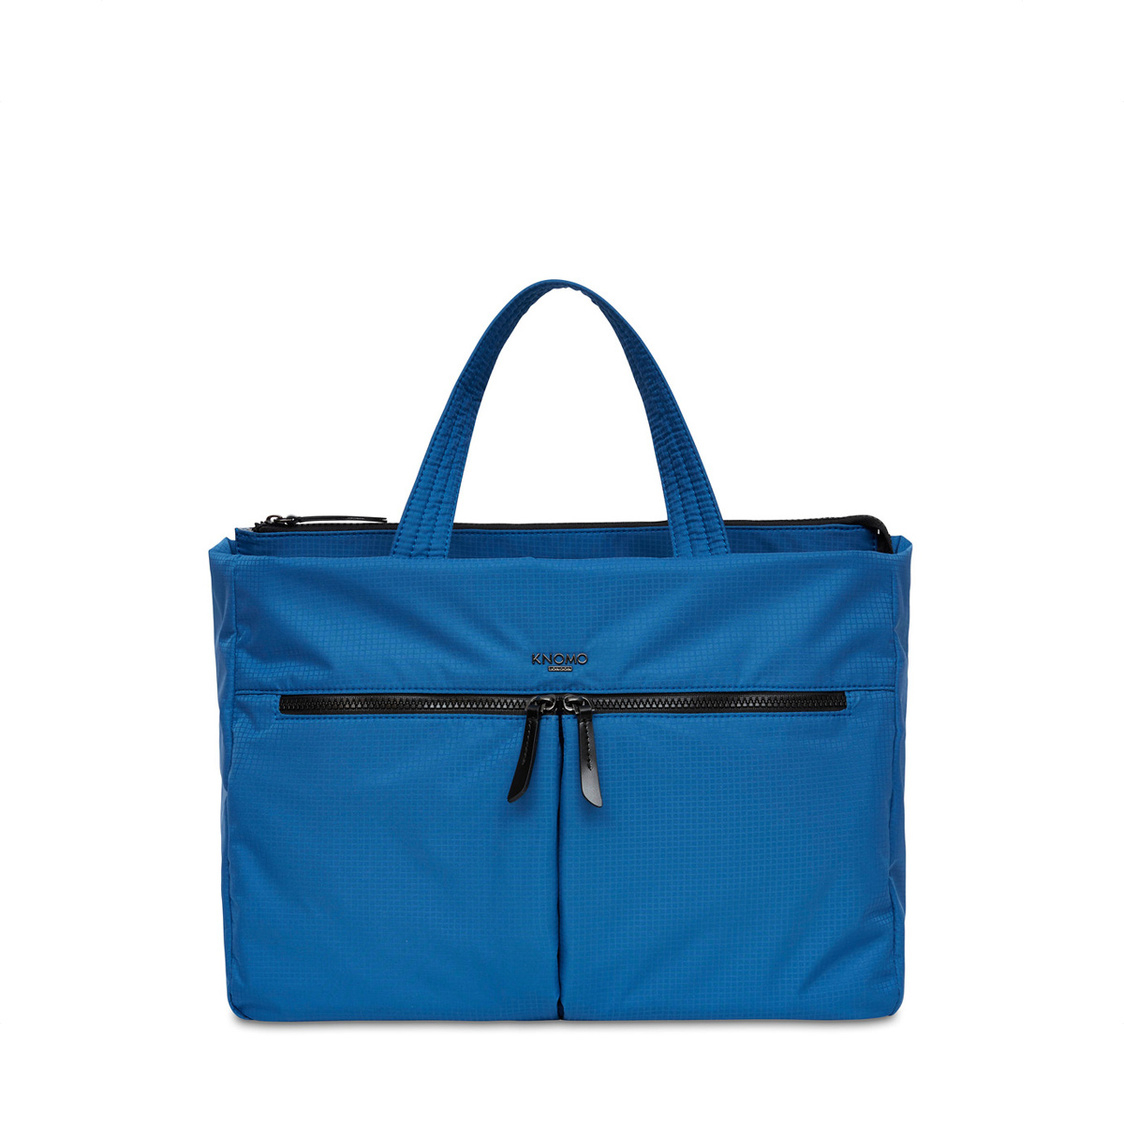 Amsterdam Ultra Lightweight Tote 14